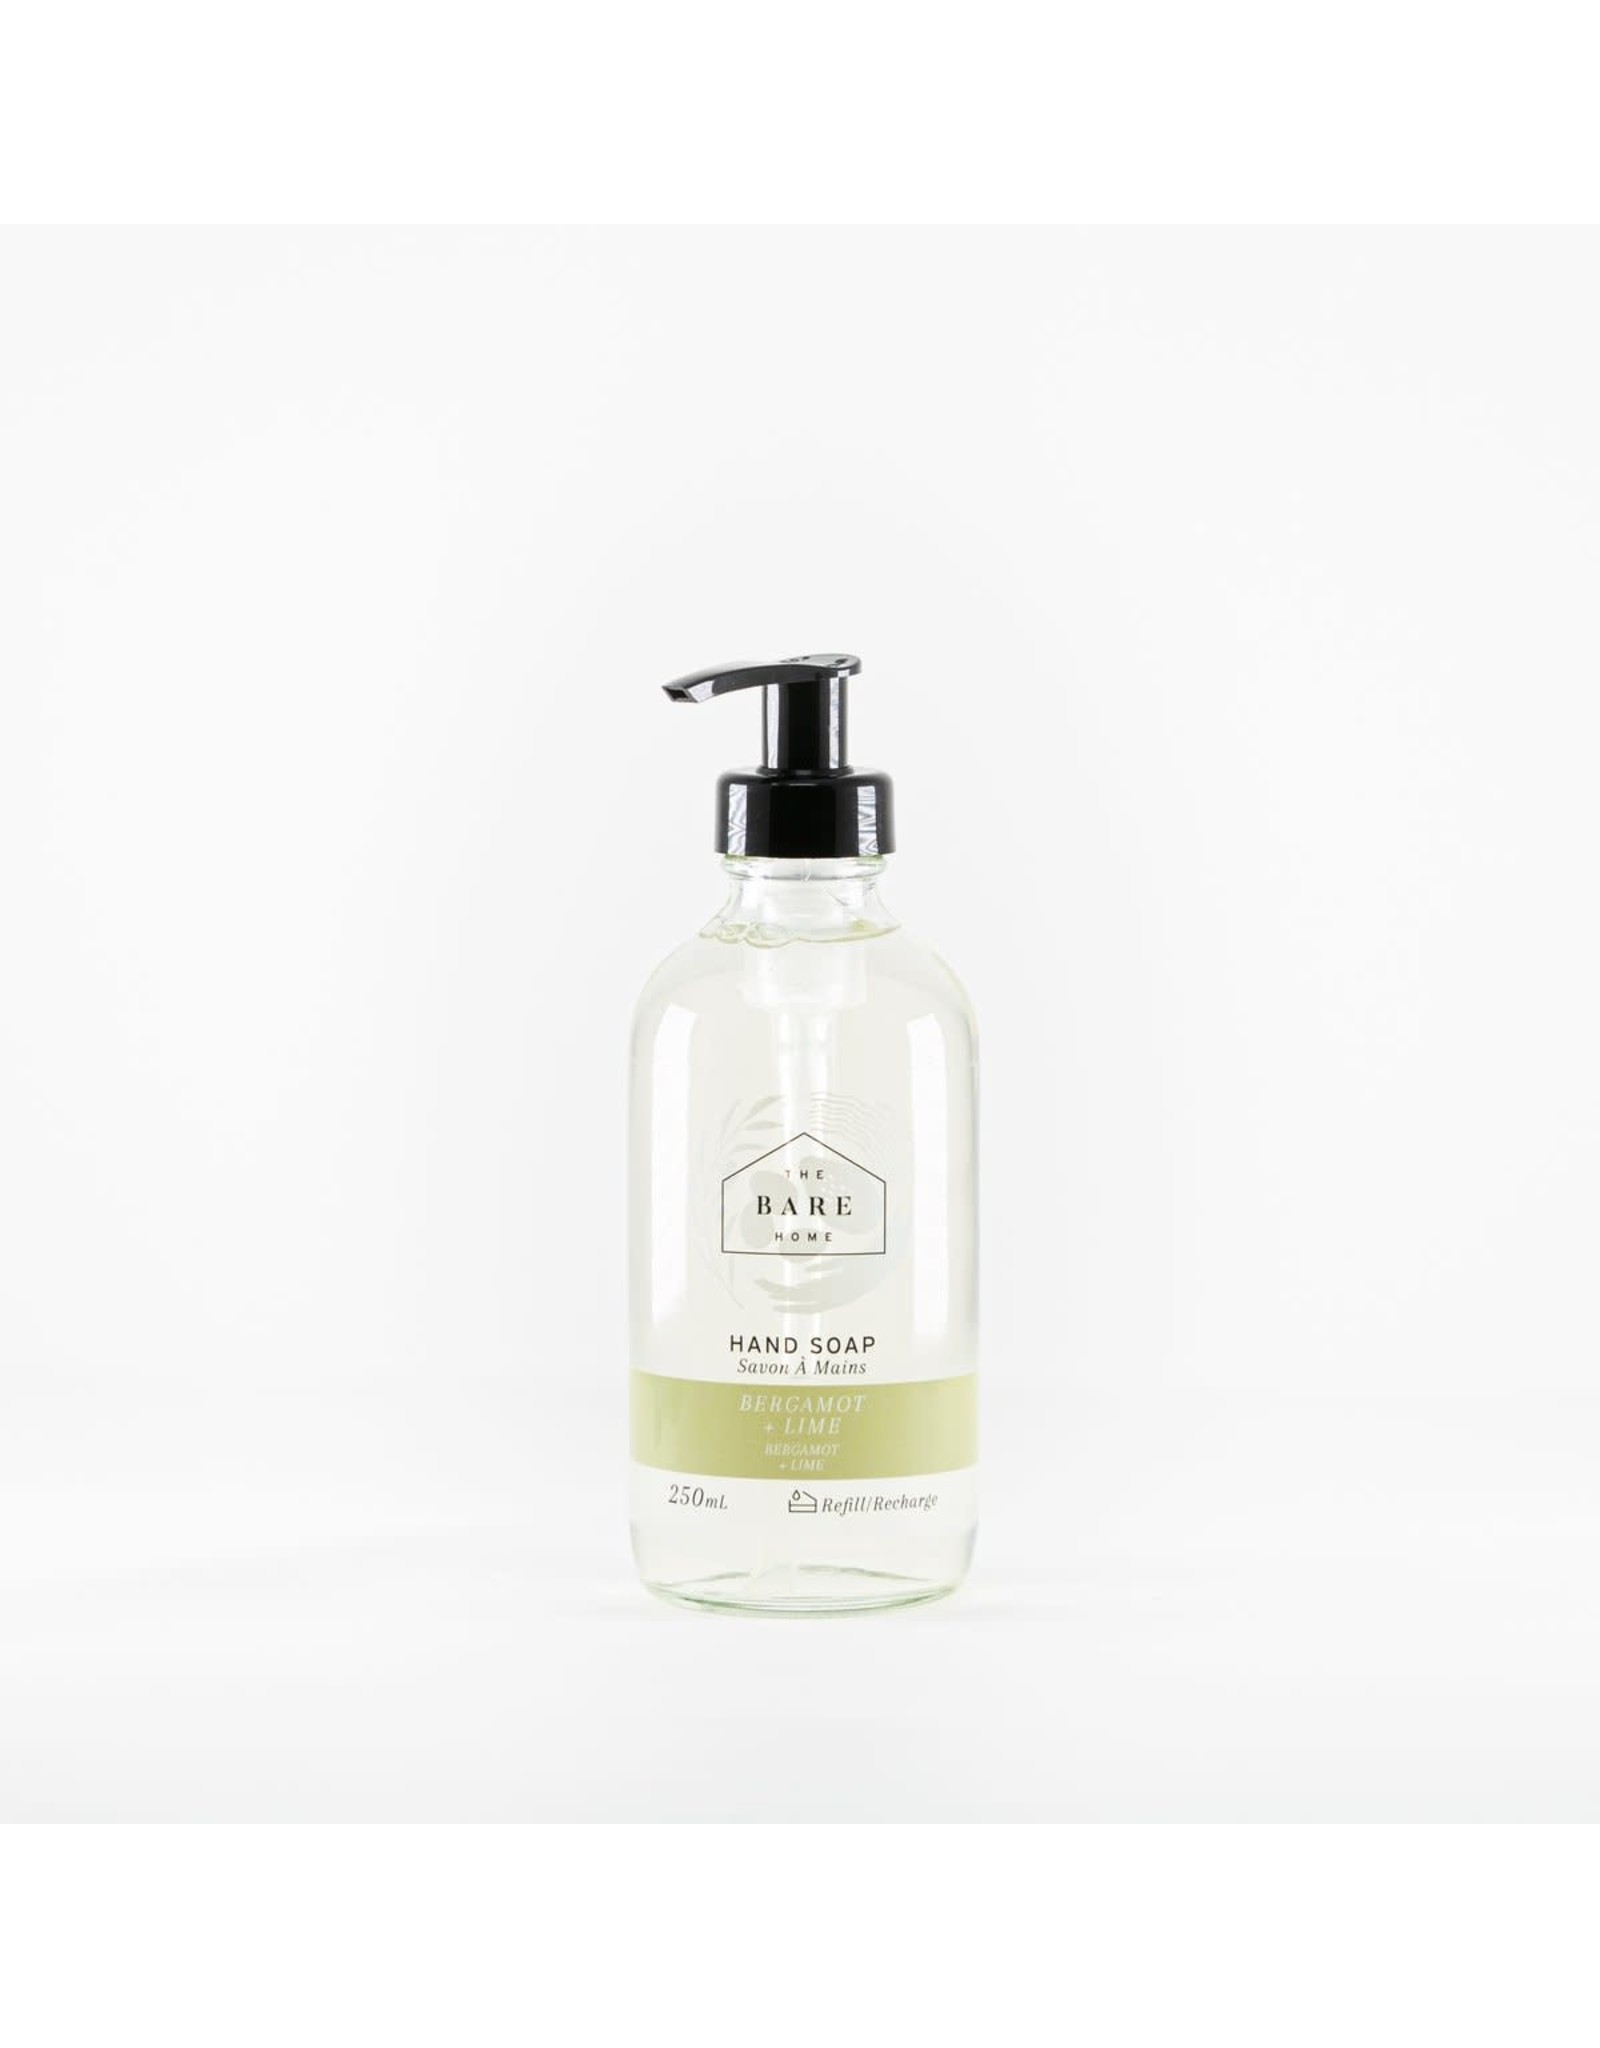 The Bare Home Liquid Hand Soap by The Bare Home